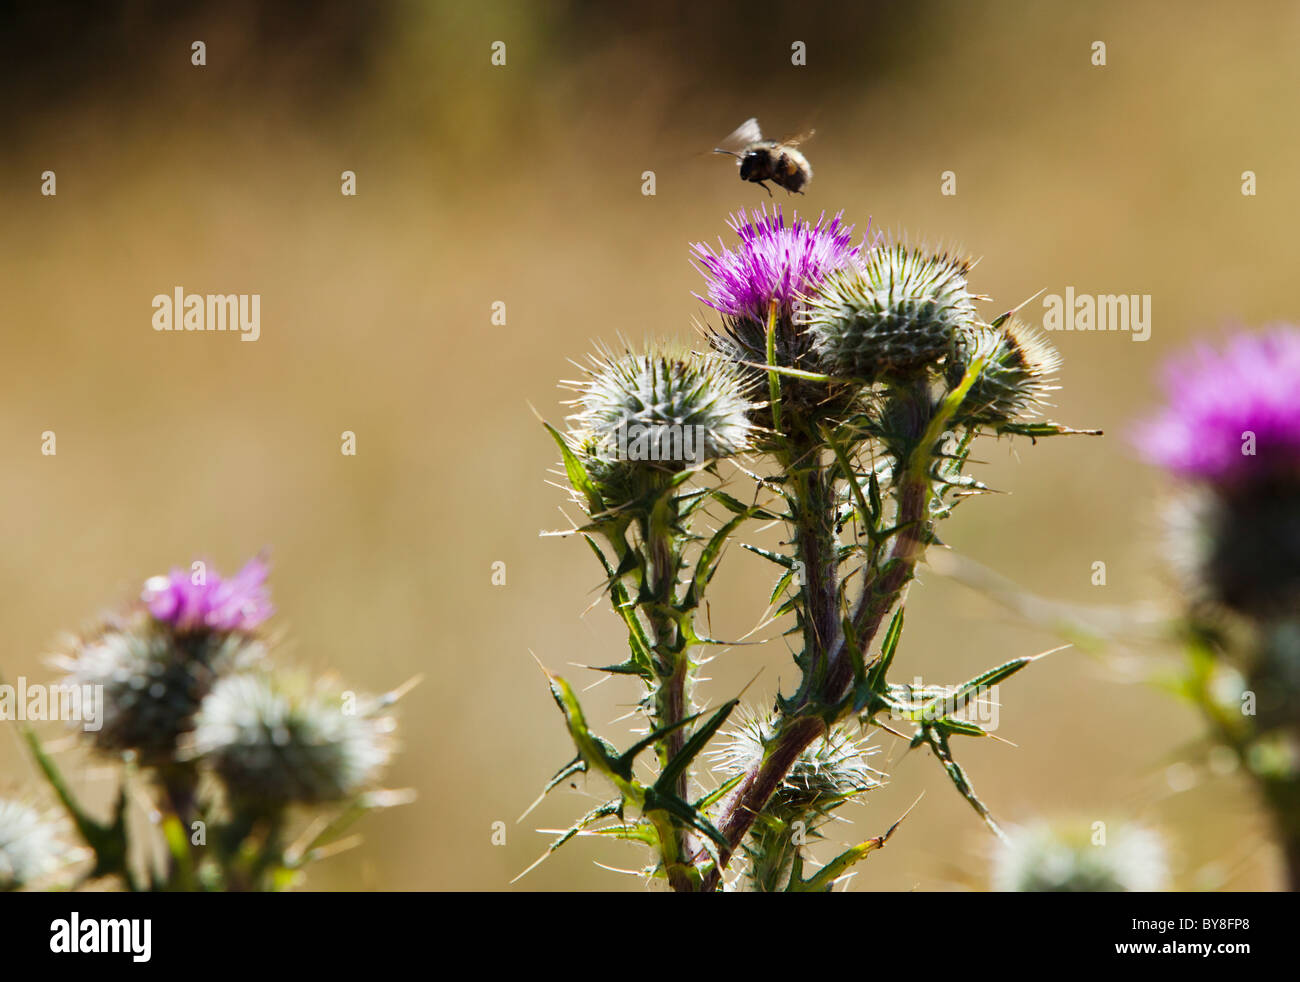 A bumble bee flying above a Canadian Thistle plant. San Juan Island, Washington, USA. - Stock Image